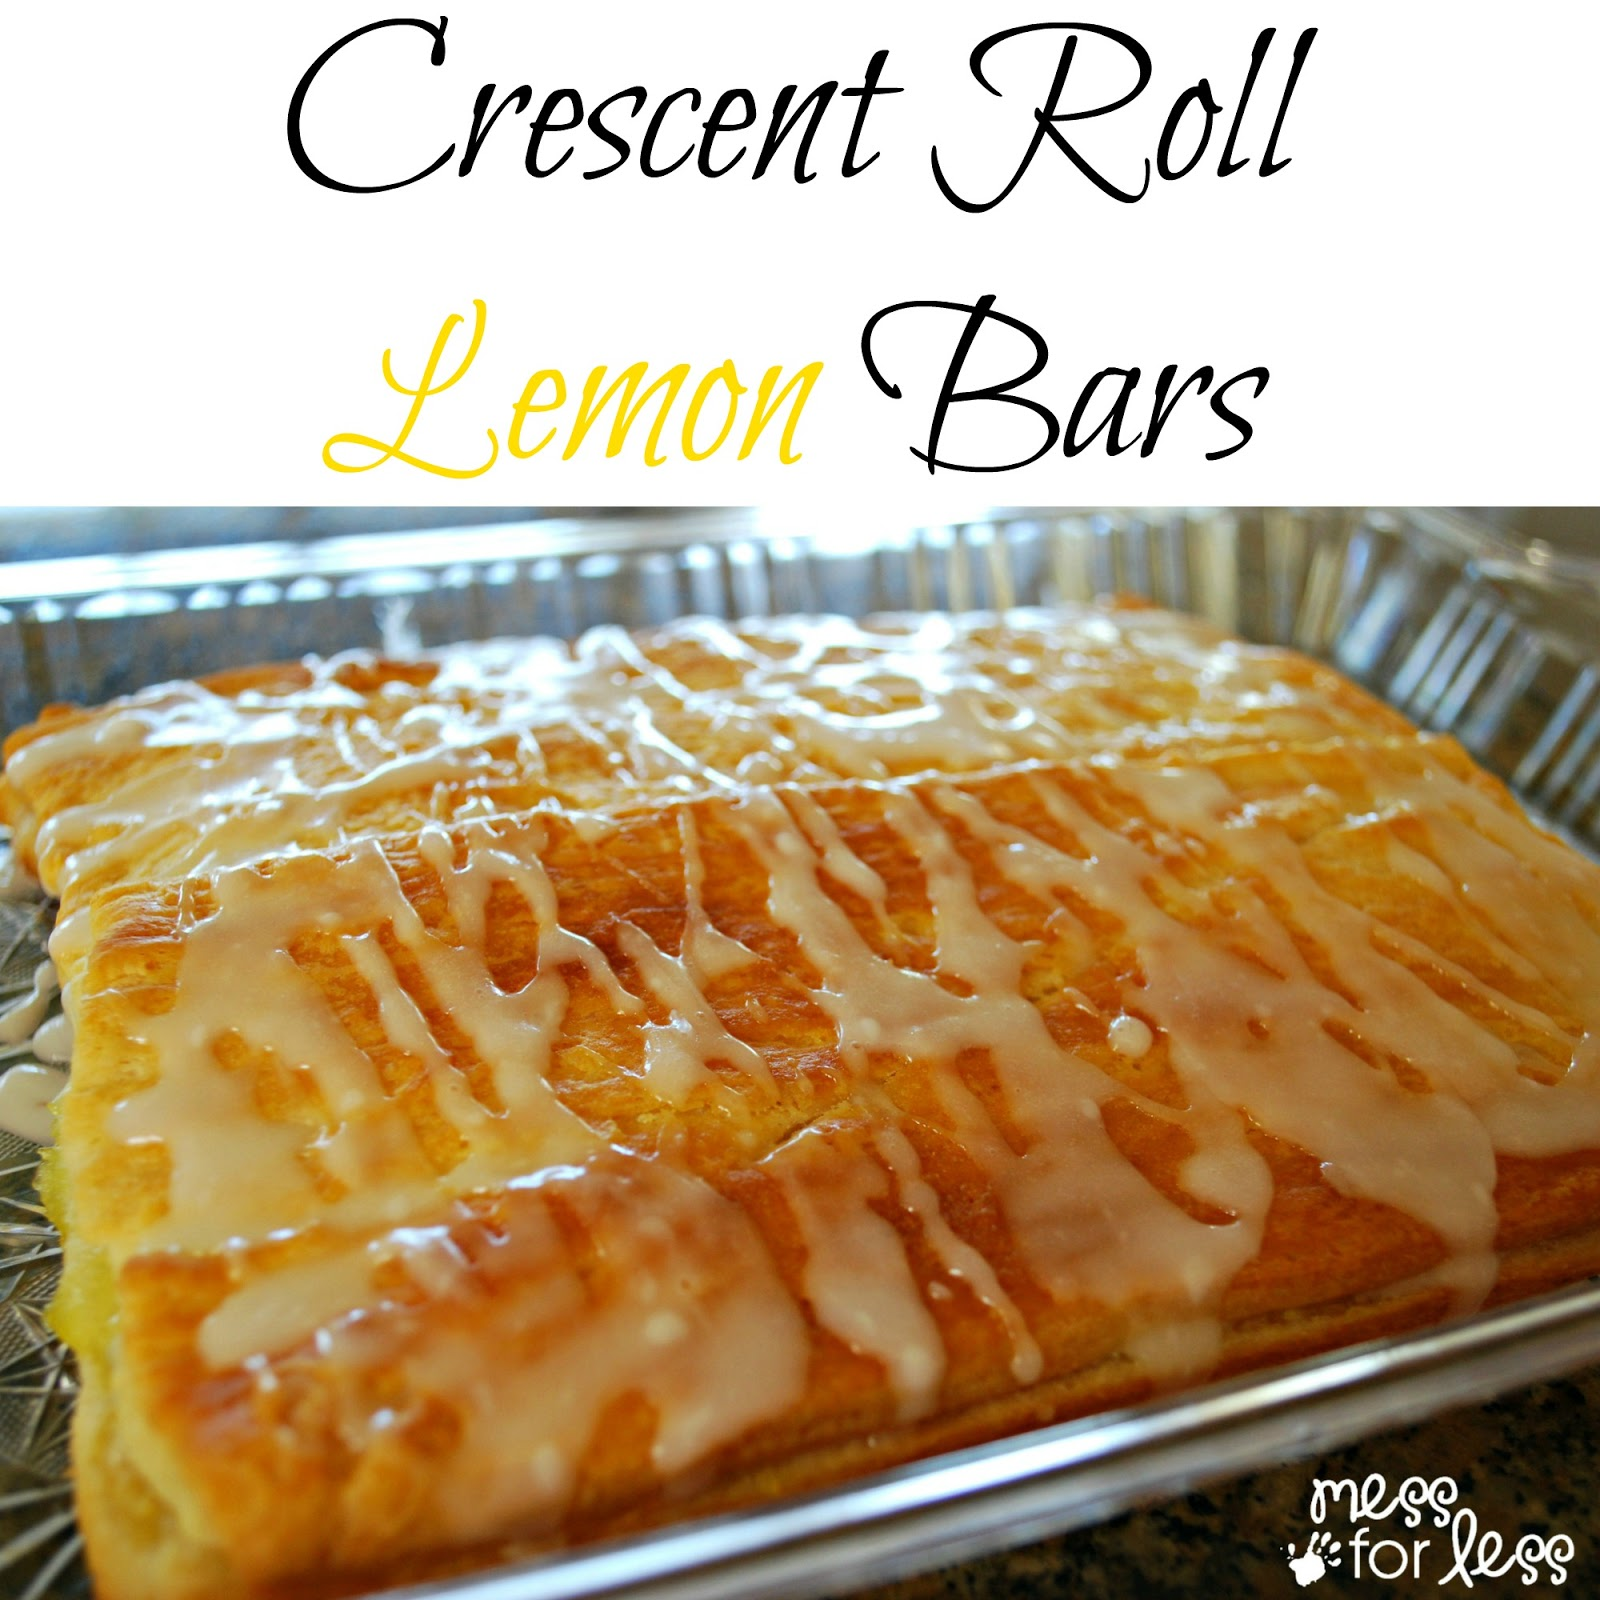 Lemon bar crescent recipe food fun friday mess for less for Food bar recipes